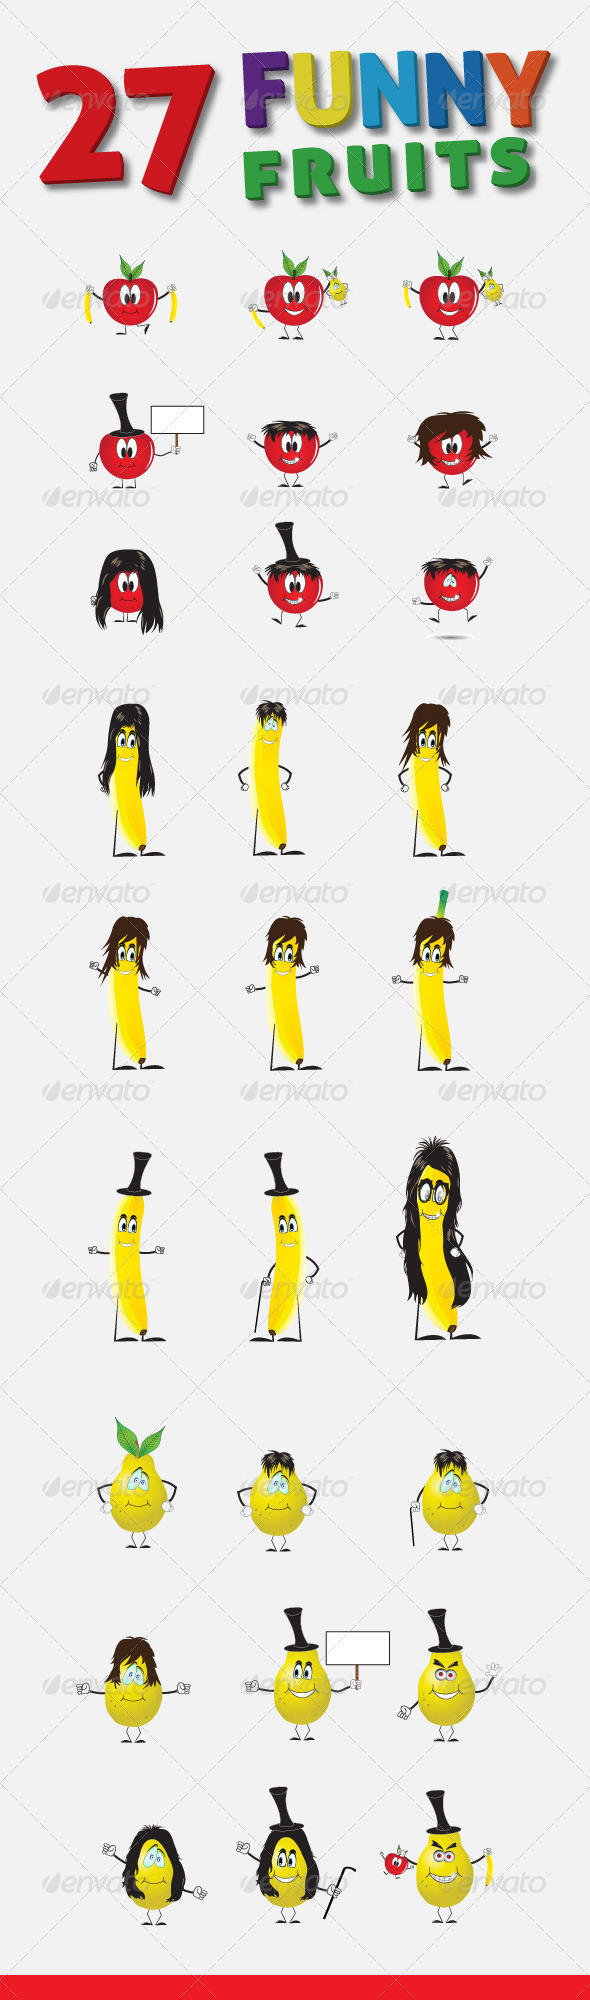 GraphicRiver 27 Funny Fruits Vector Characters 3737761